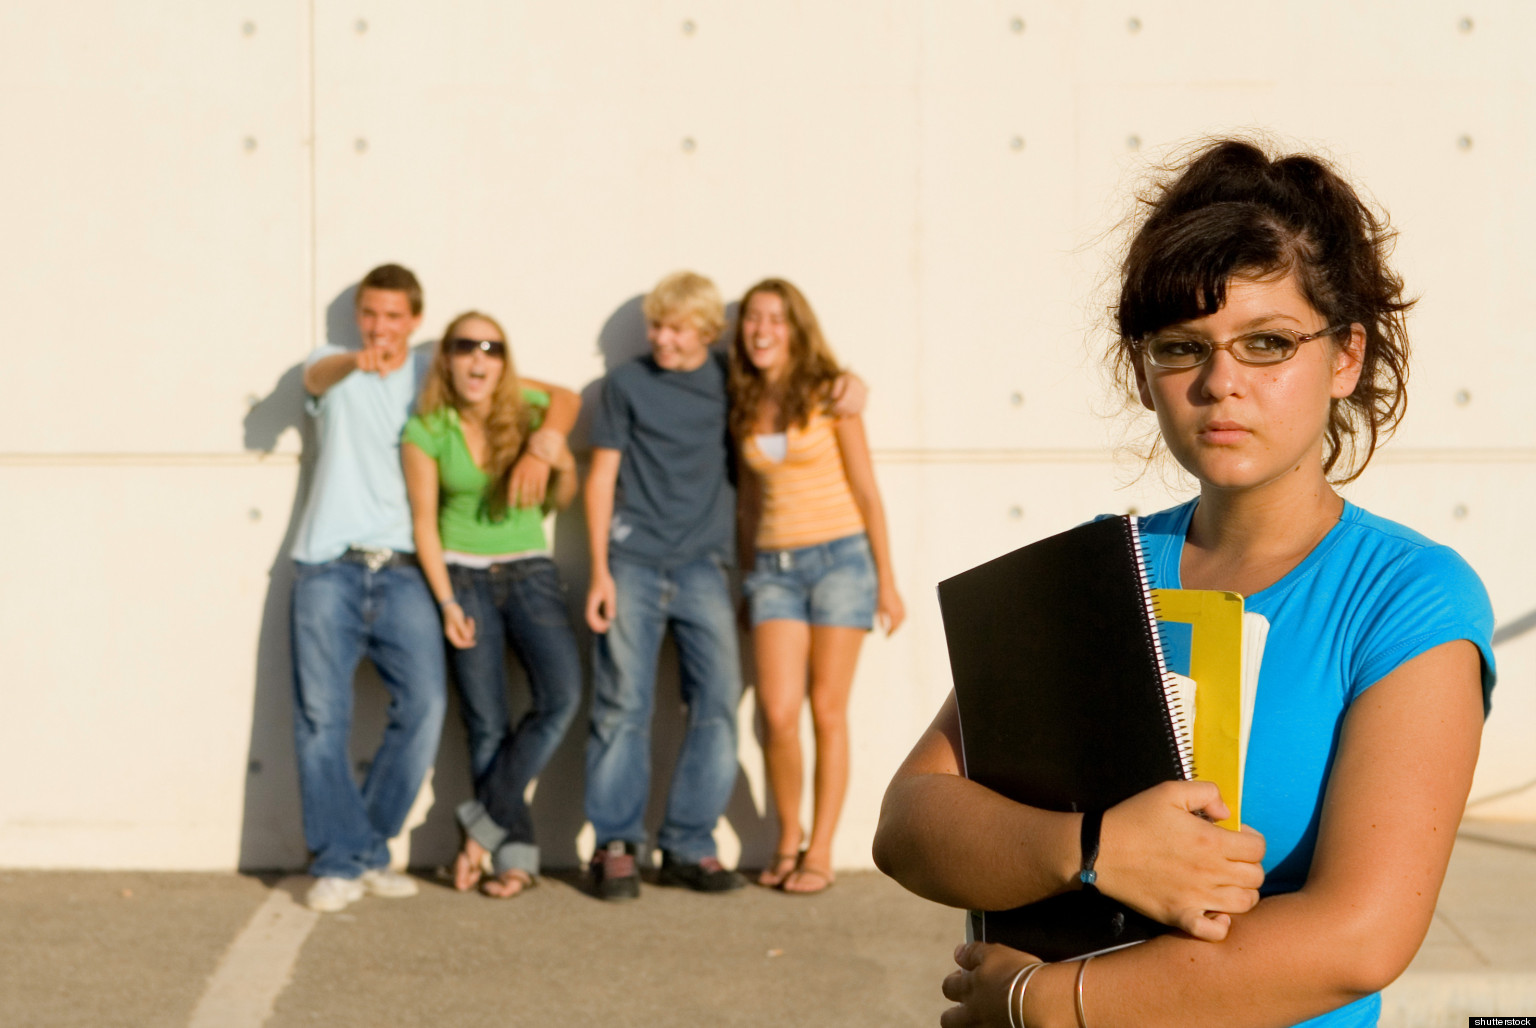 bullying in the elementry school essay Bullying school bullying introduction even though there is no safe place from bullying there are some areas where bullying is worse school bullying statistics show that about 77% of students are either.